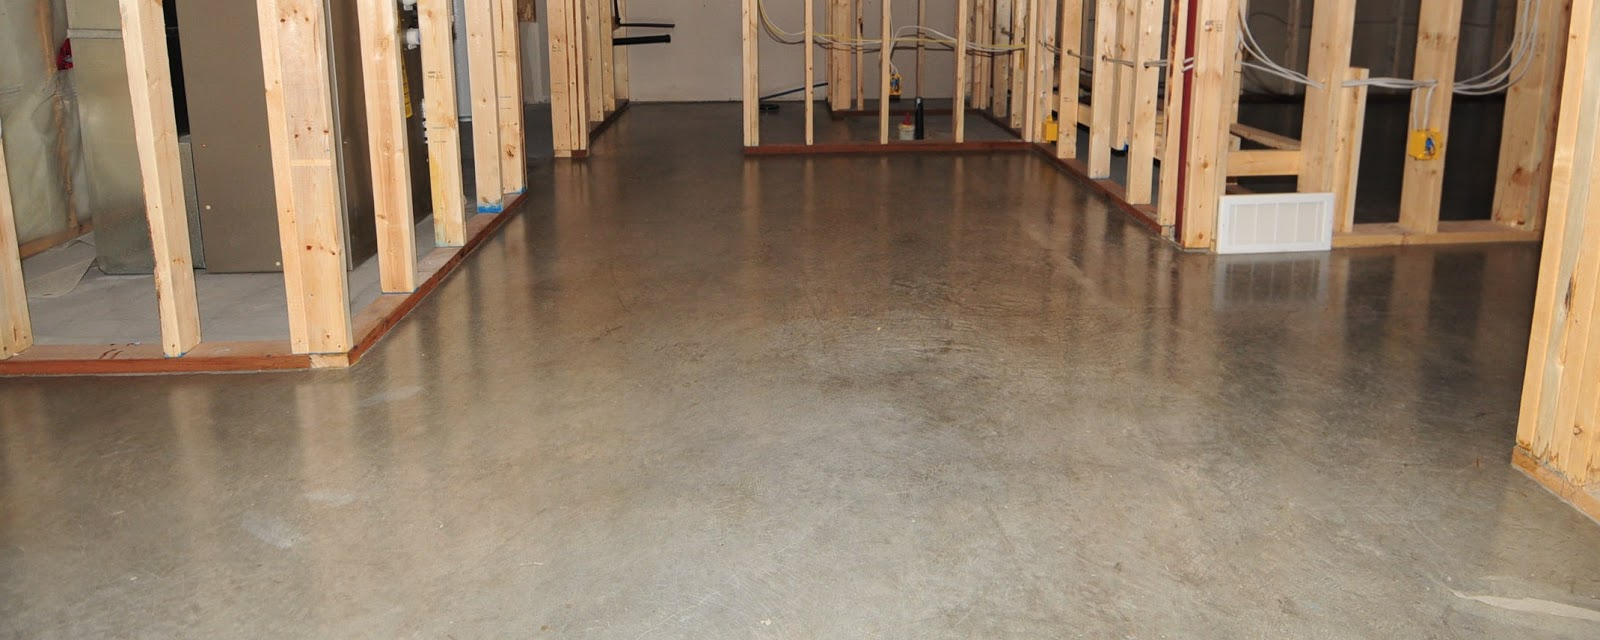 MODE CONCRETE Hip and Modern Basement Concrete Floors we are